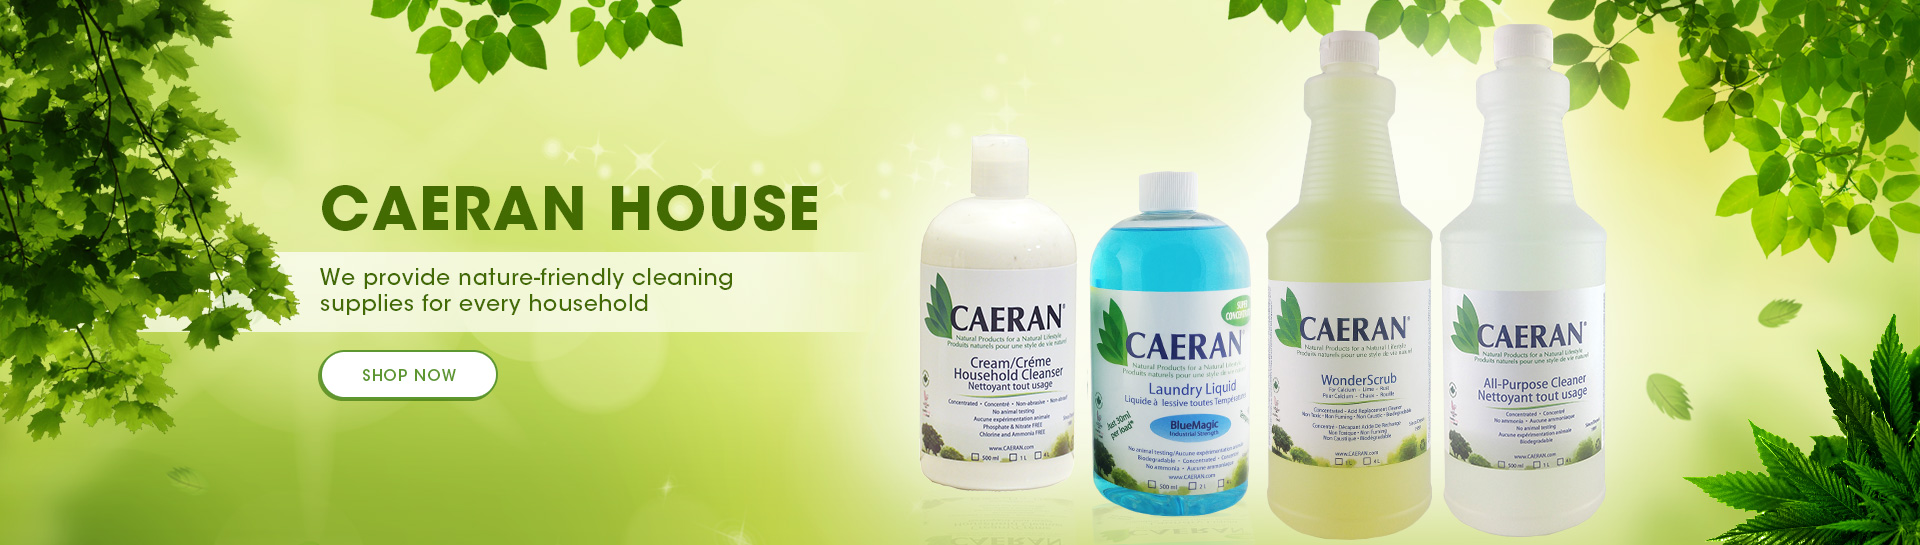 banner-new-site-2018-caeran-house.jpg